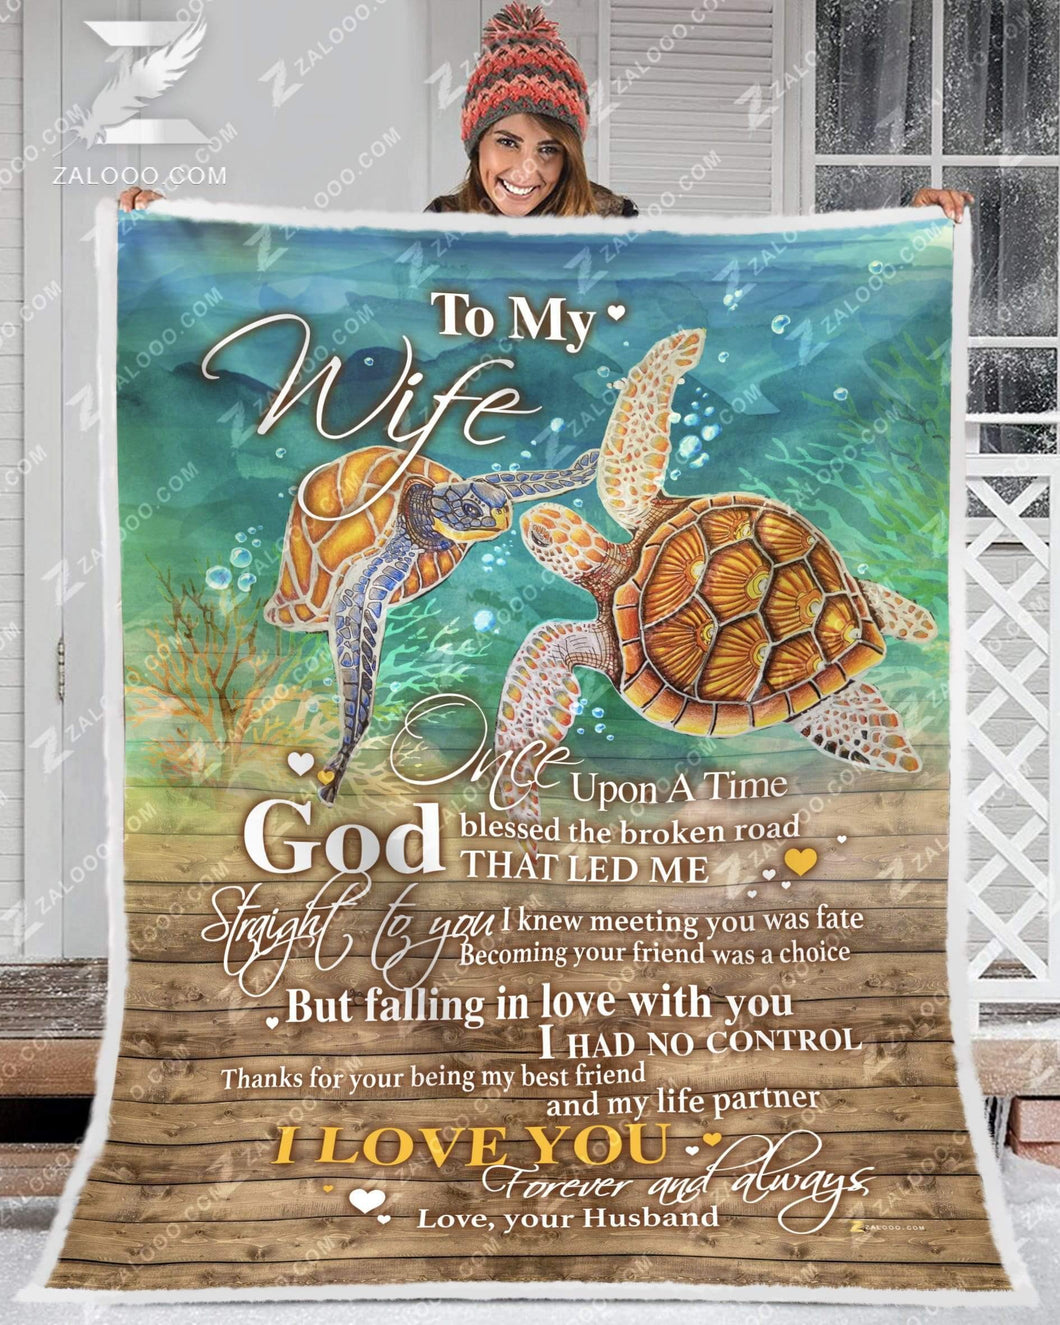 BLANKET TURTLE To my Wife God Blessed The Broken Road Ver2 - Zalooo.com Custom Wall Art Canvas